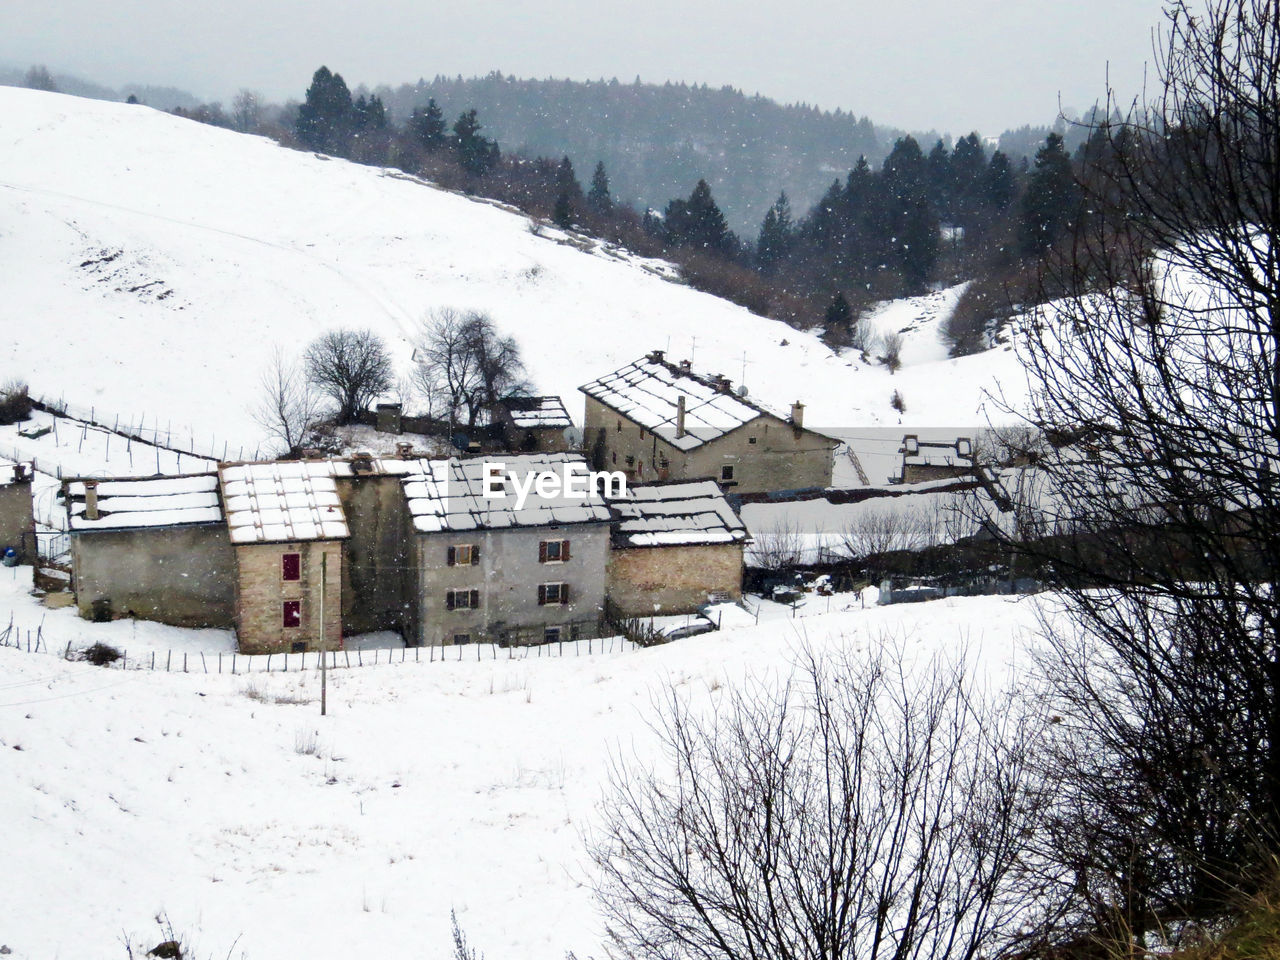 snow, cold temperature, winter, built structure, architecture, weather, building exterior, house, tree, nature, beauty in nature, scenics, no people, outdoors, bare tree, tranquil scene, tranquility, landscape, day, mountain, sky